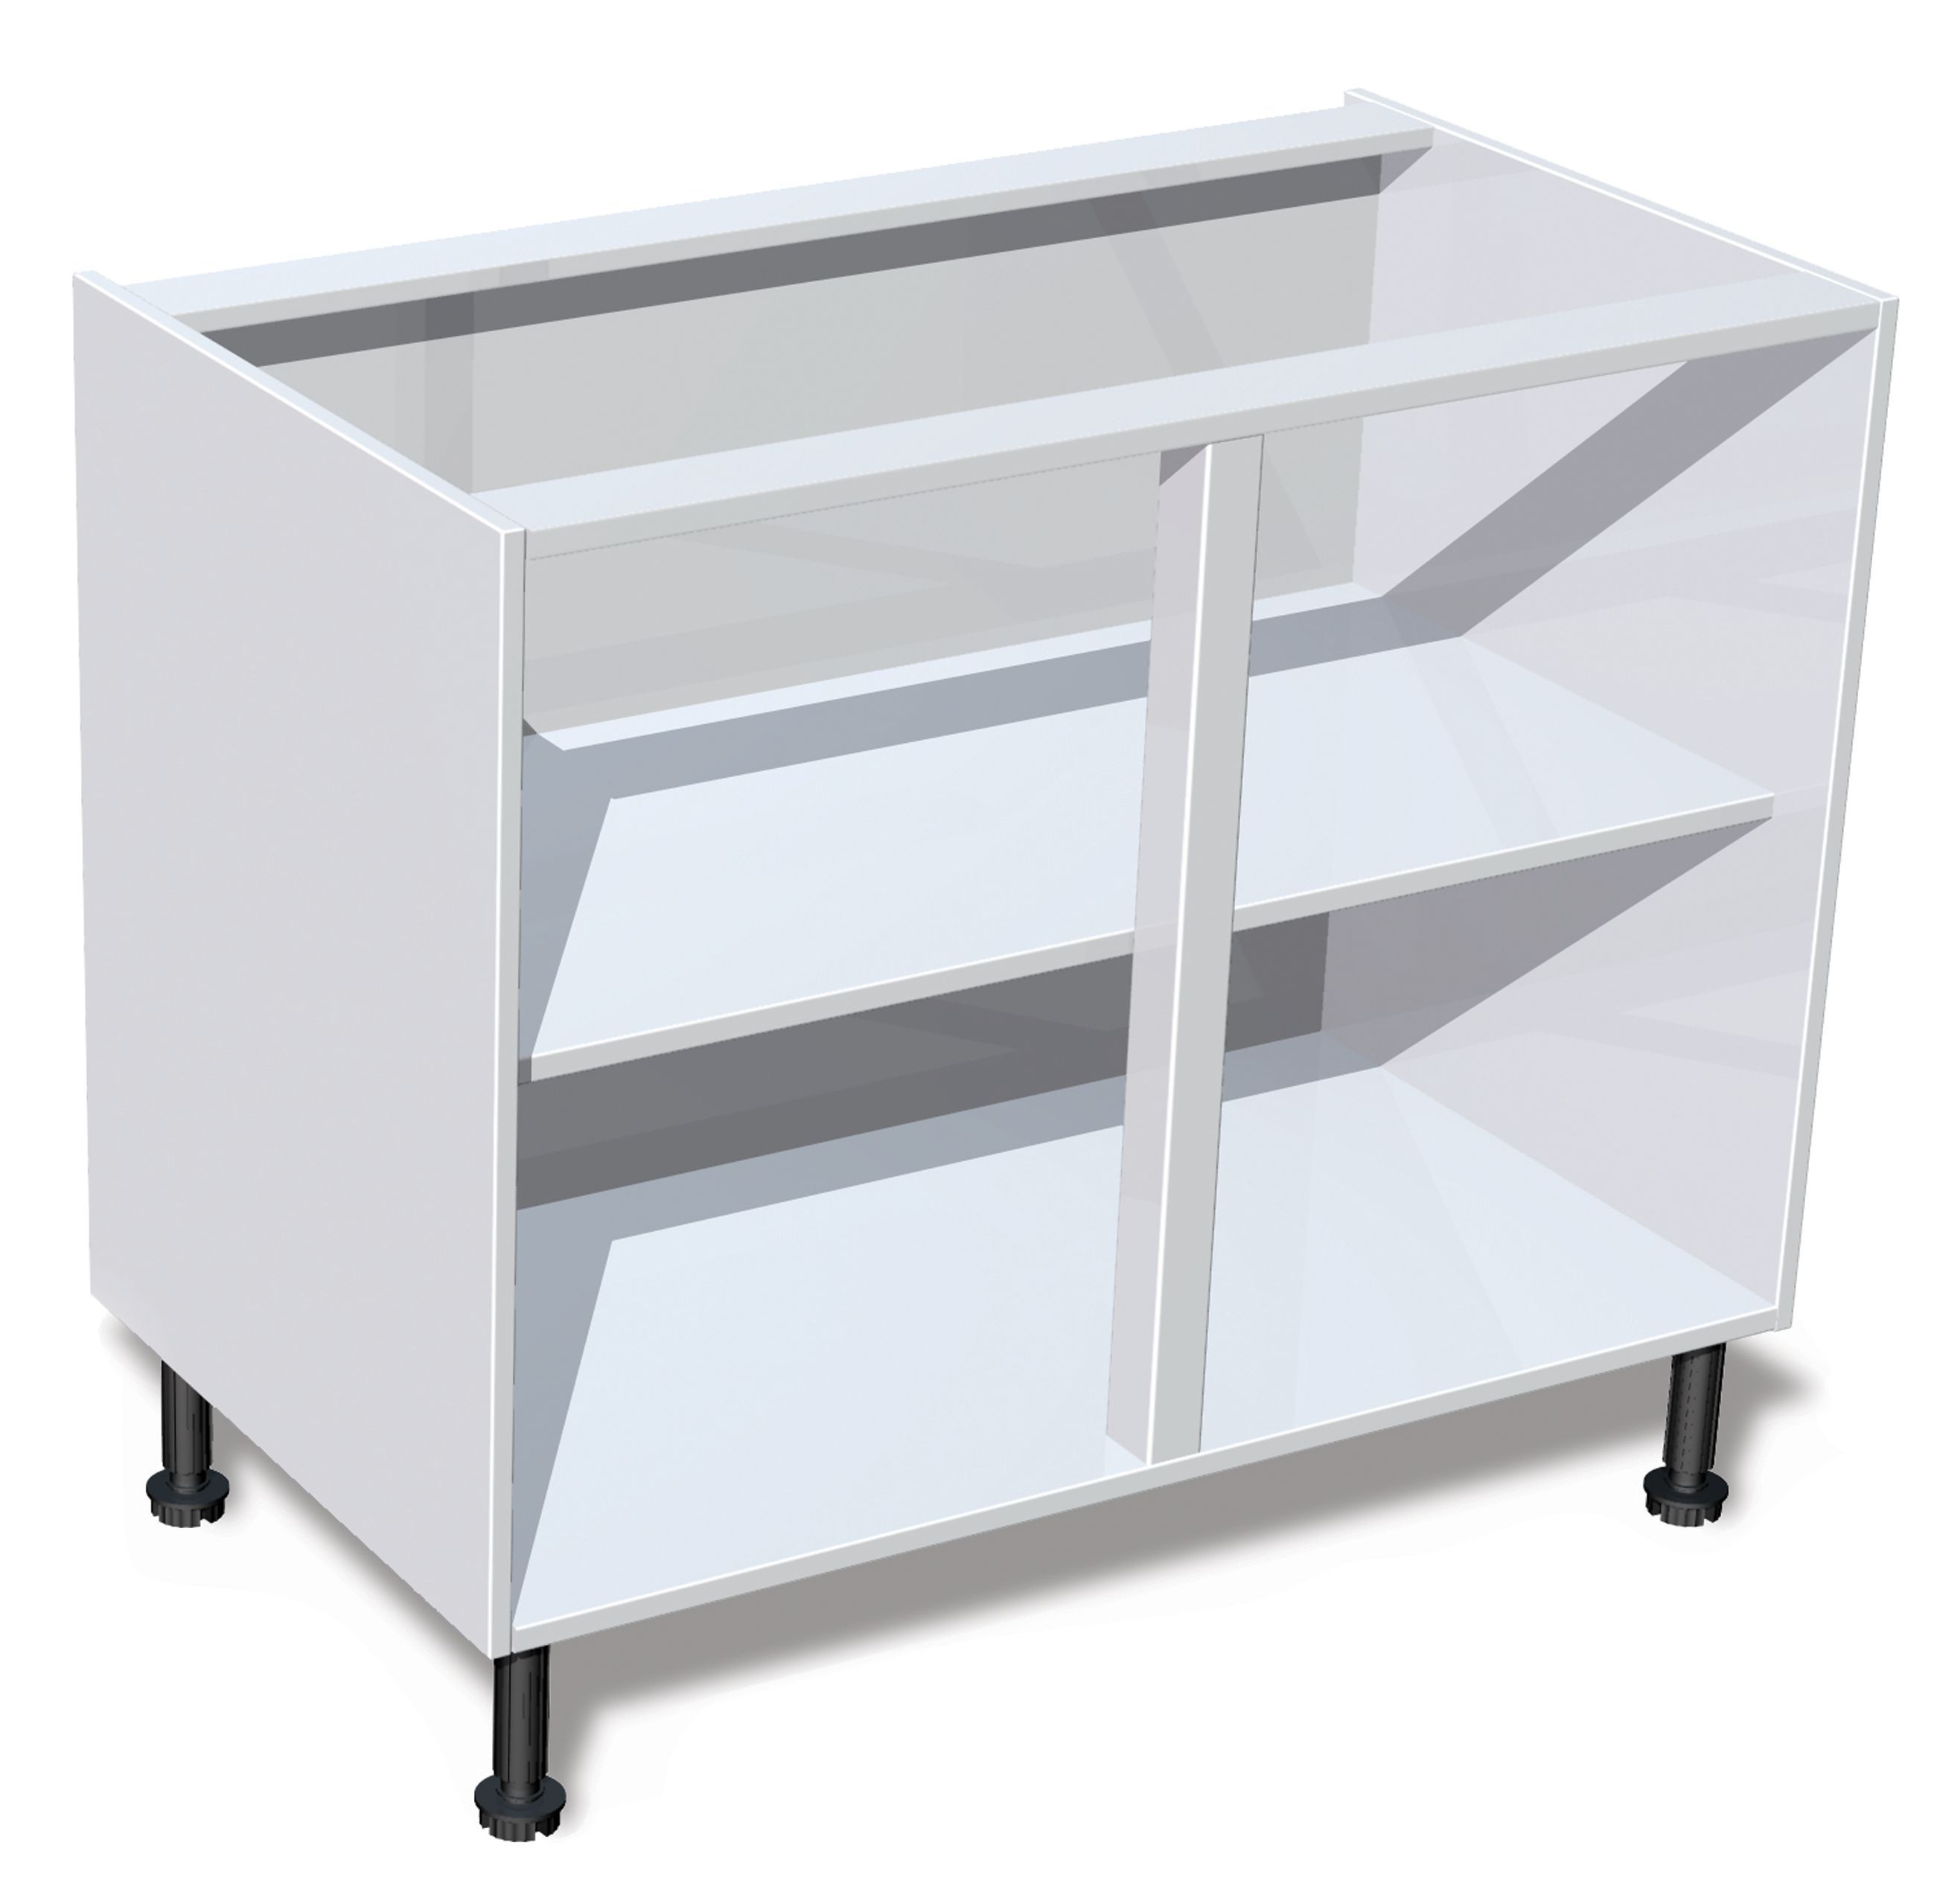 Corner Kitchen Sink Base Unit : ... corner kitchen sink unit base kitchen corner sink cabinet